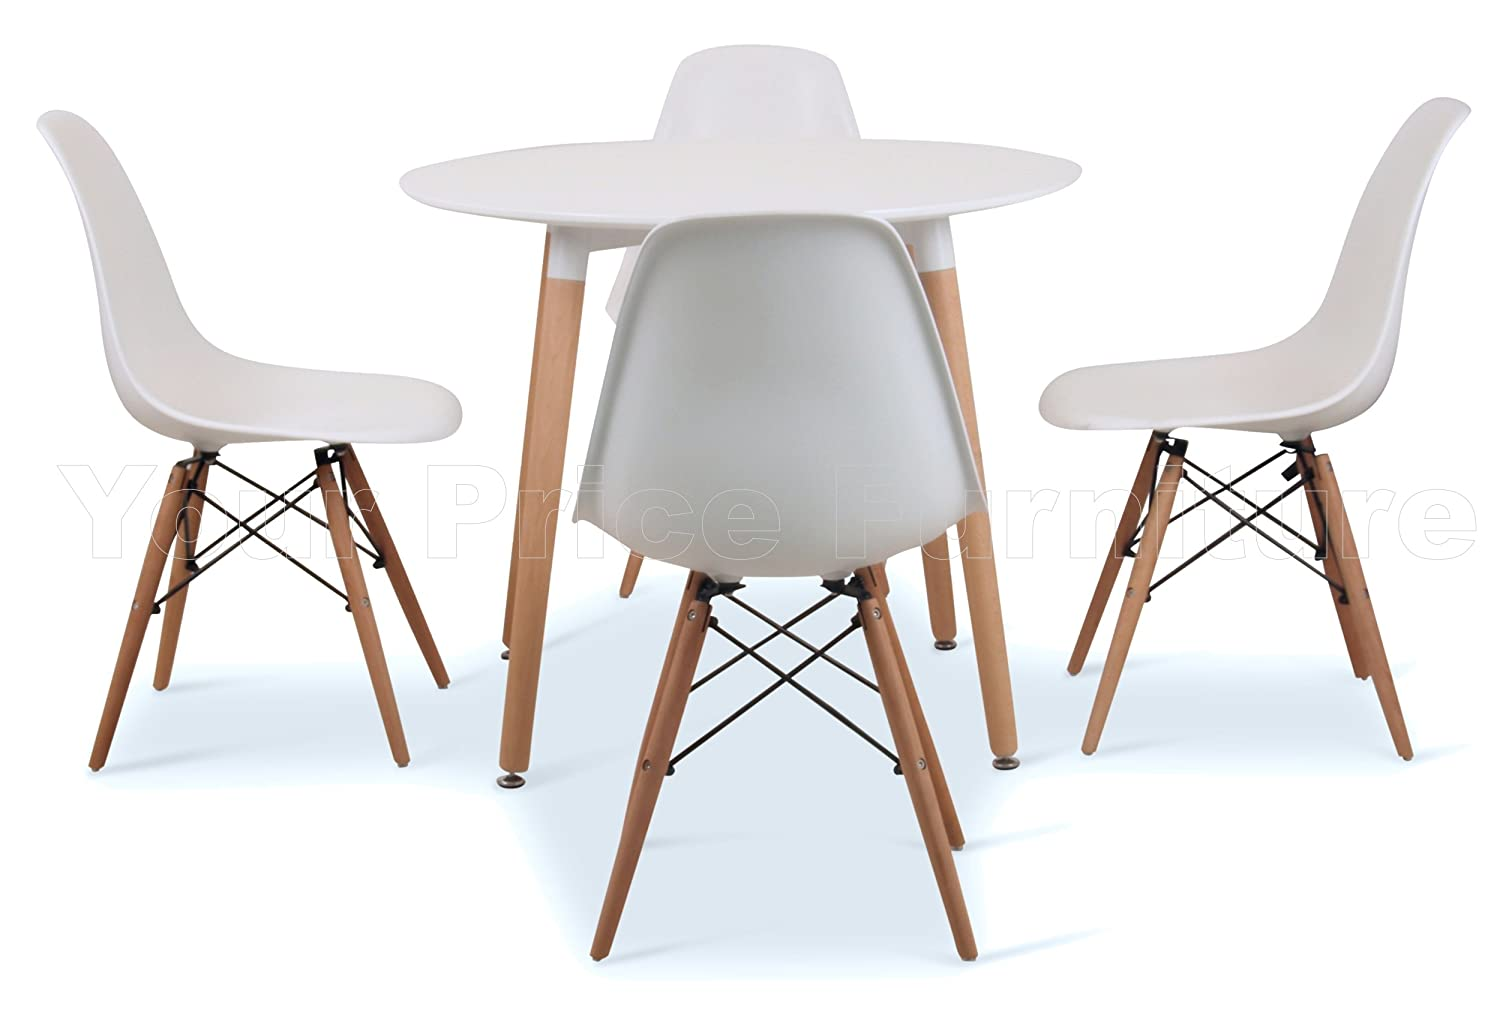 Small Round White Table Starrkingschool : 71kxIjD1GBLSL1500 from www.starrkingschool.net size 1500 x 1016 jpeg 112kB